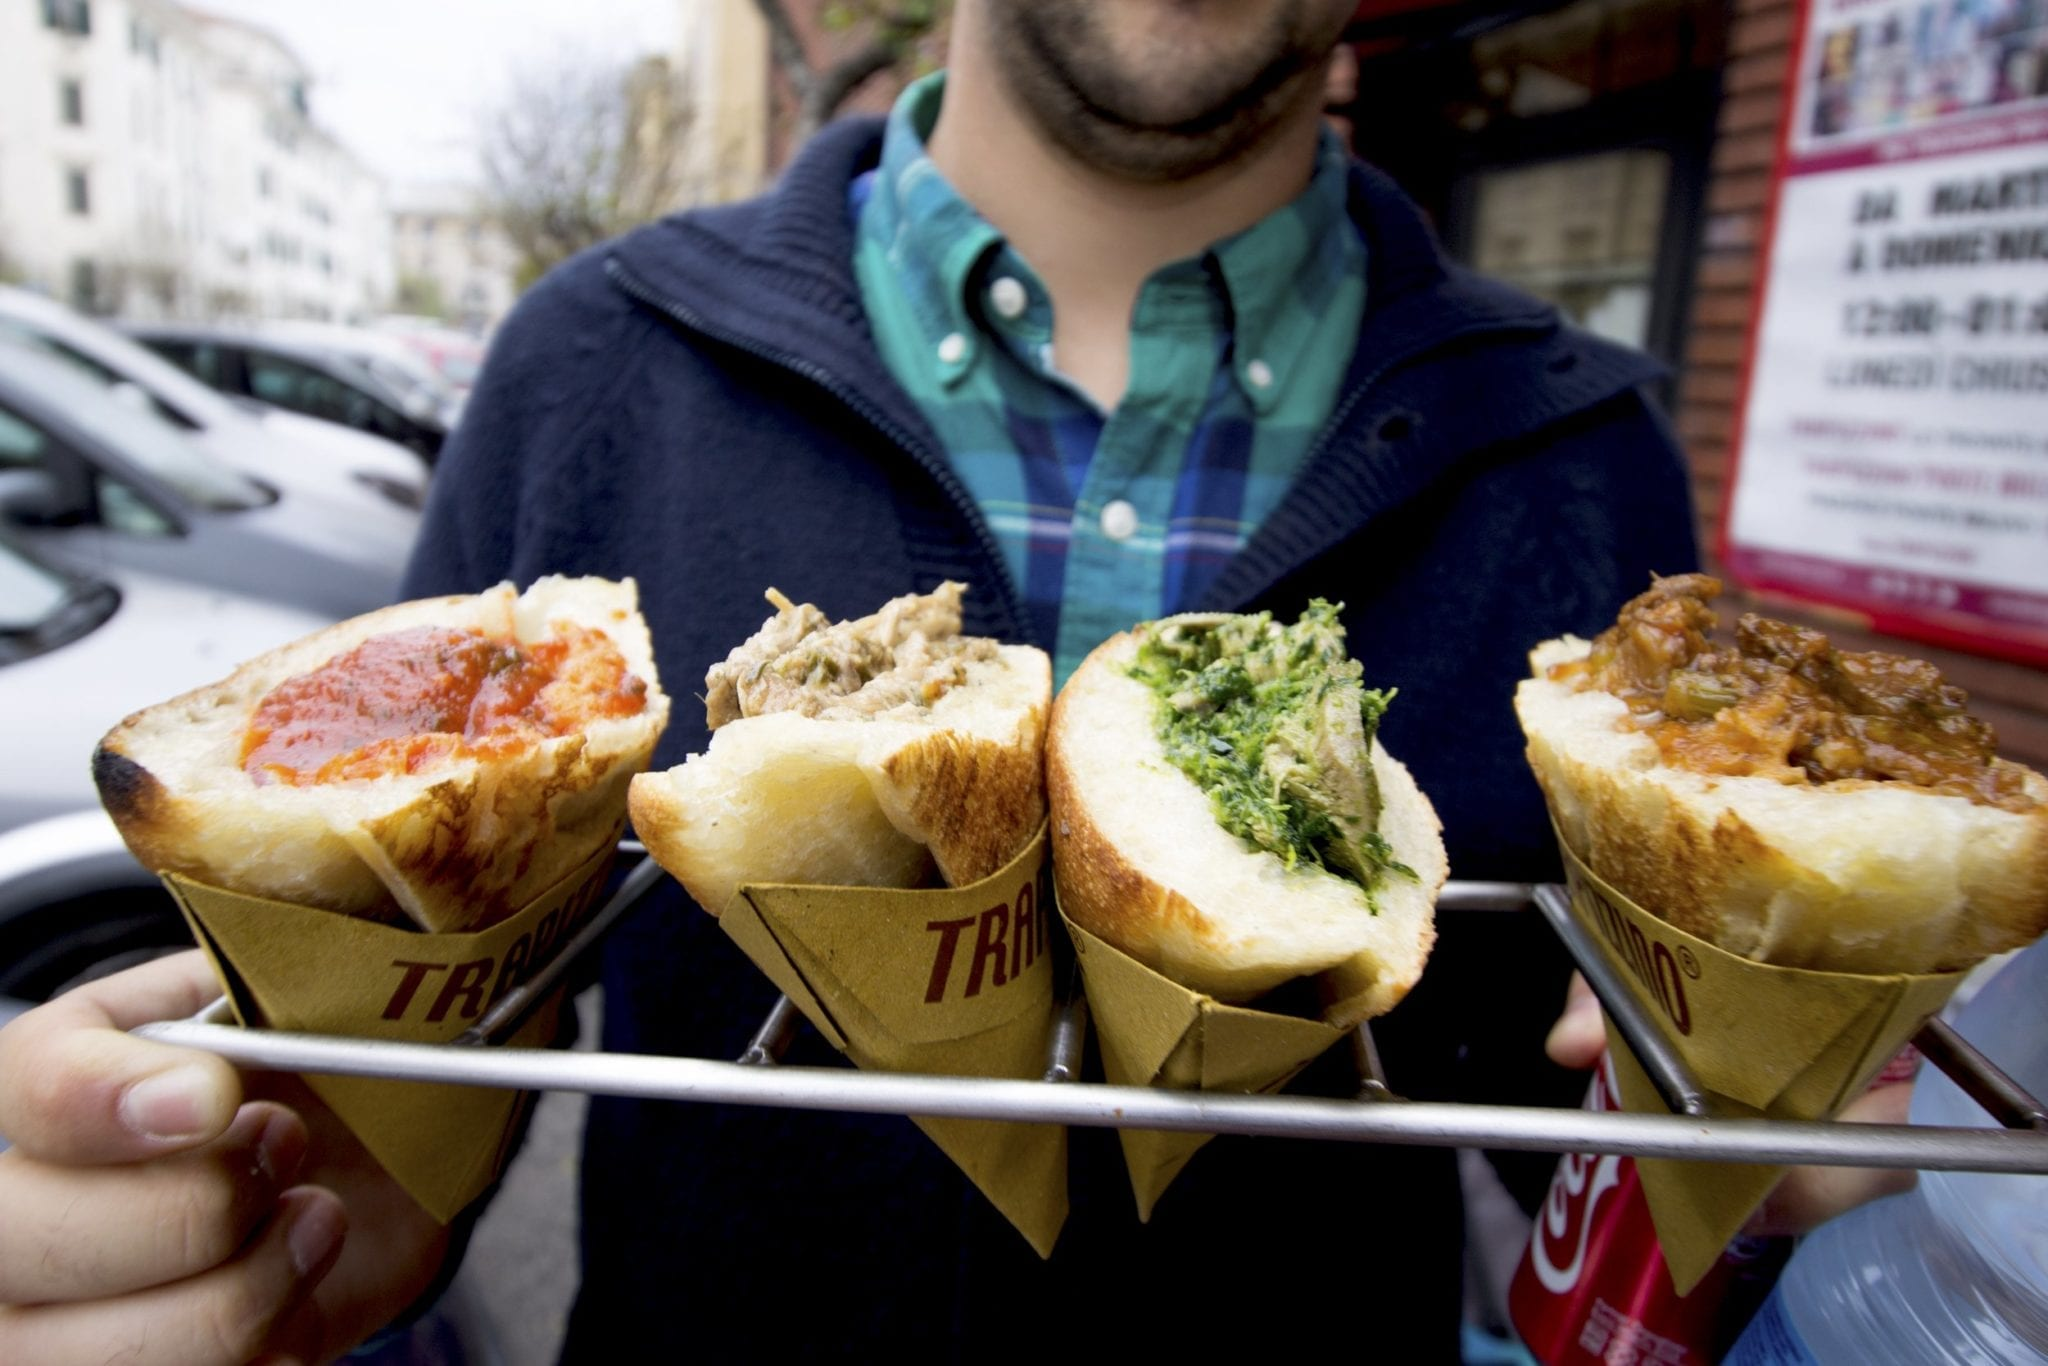 A man holds up four cones of what looks like bread topped with sauce in Rome.